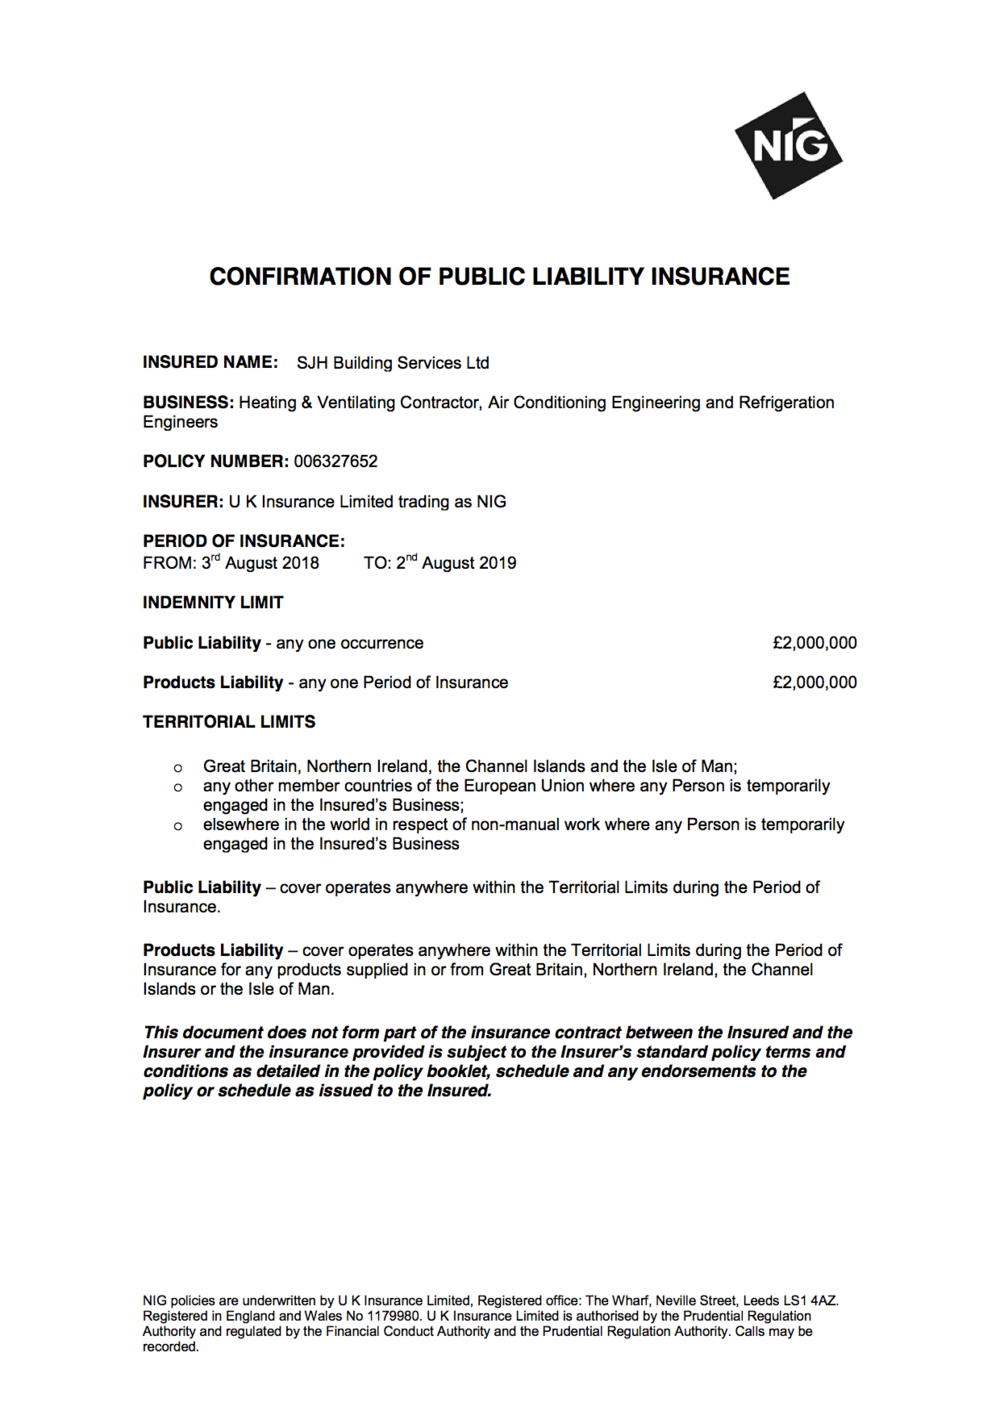 (739204778) Certificate - Tradesman & Professionals Policy from NIG[53651].png